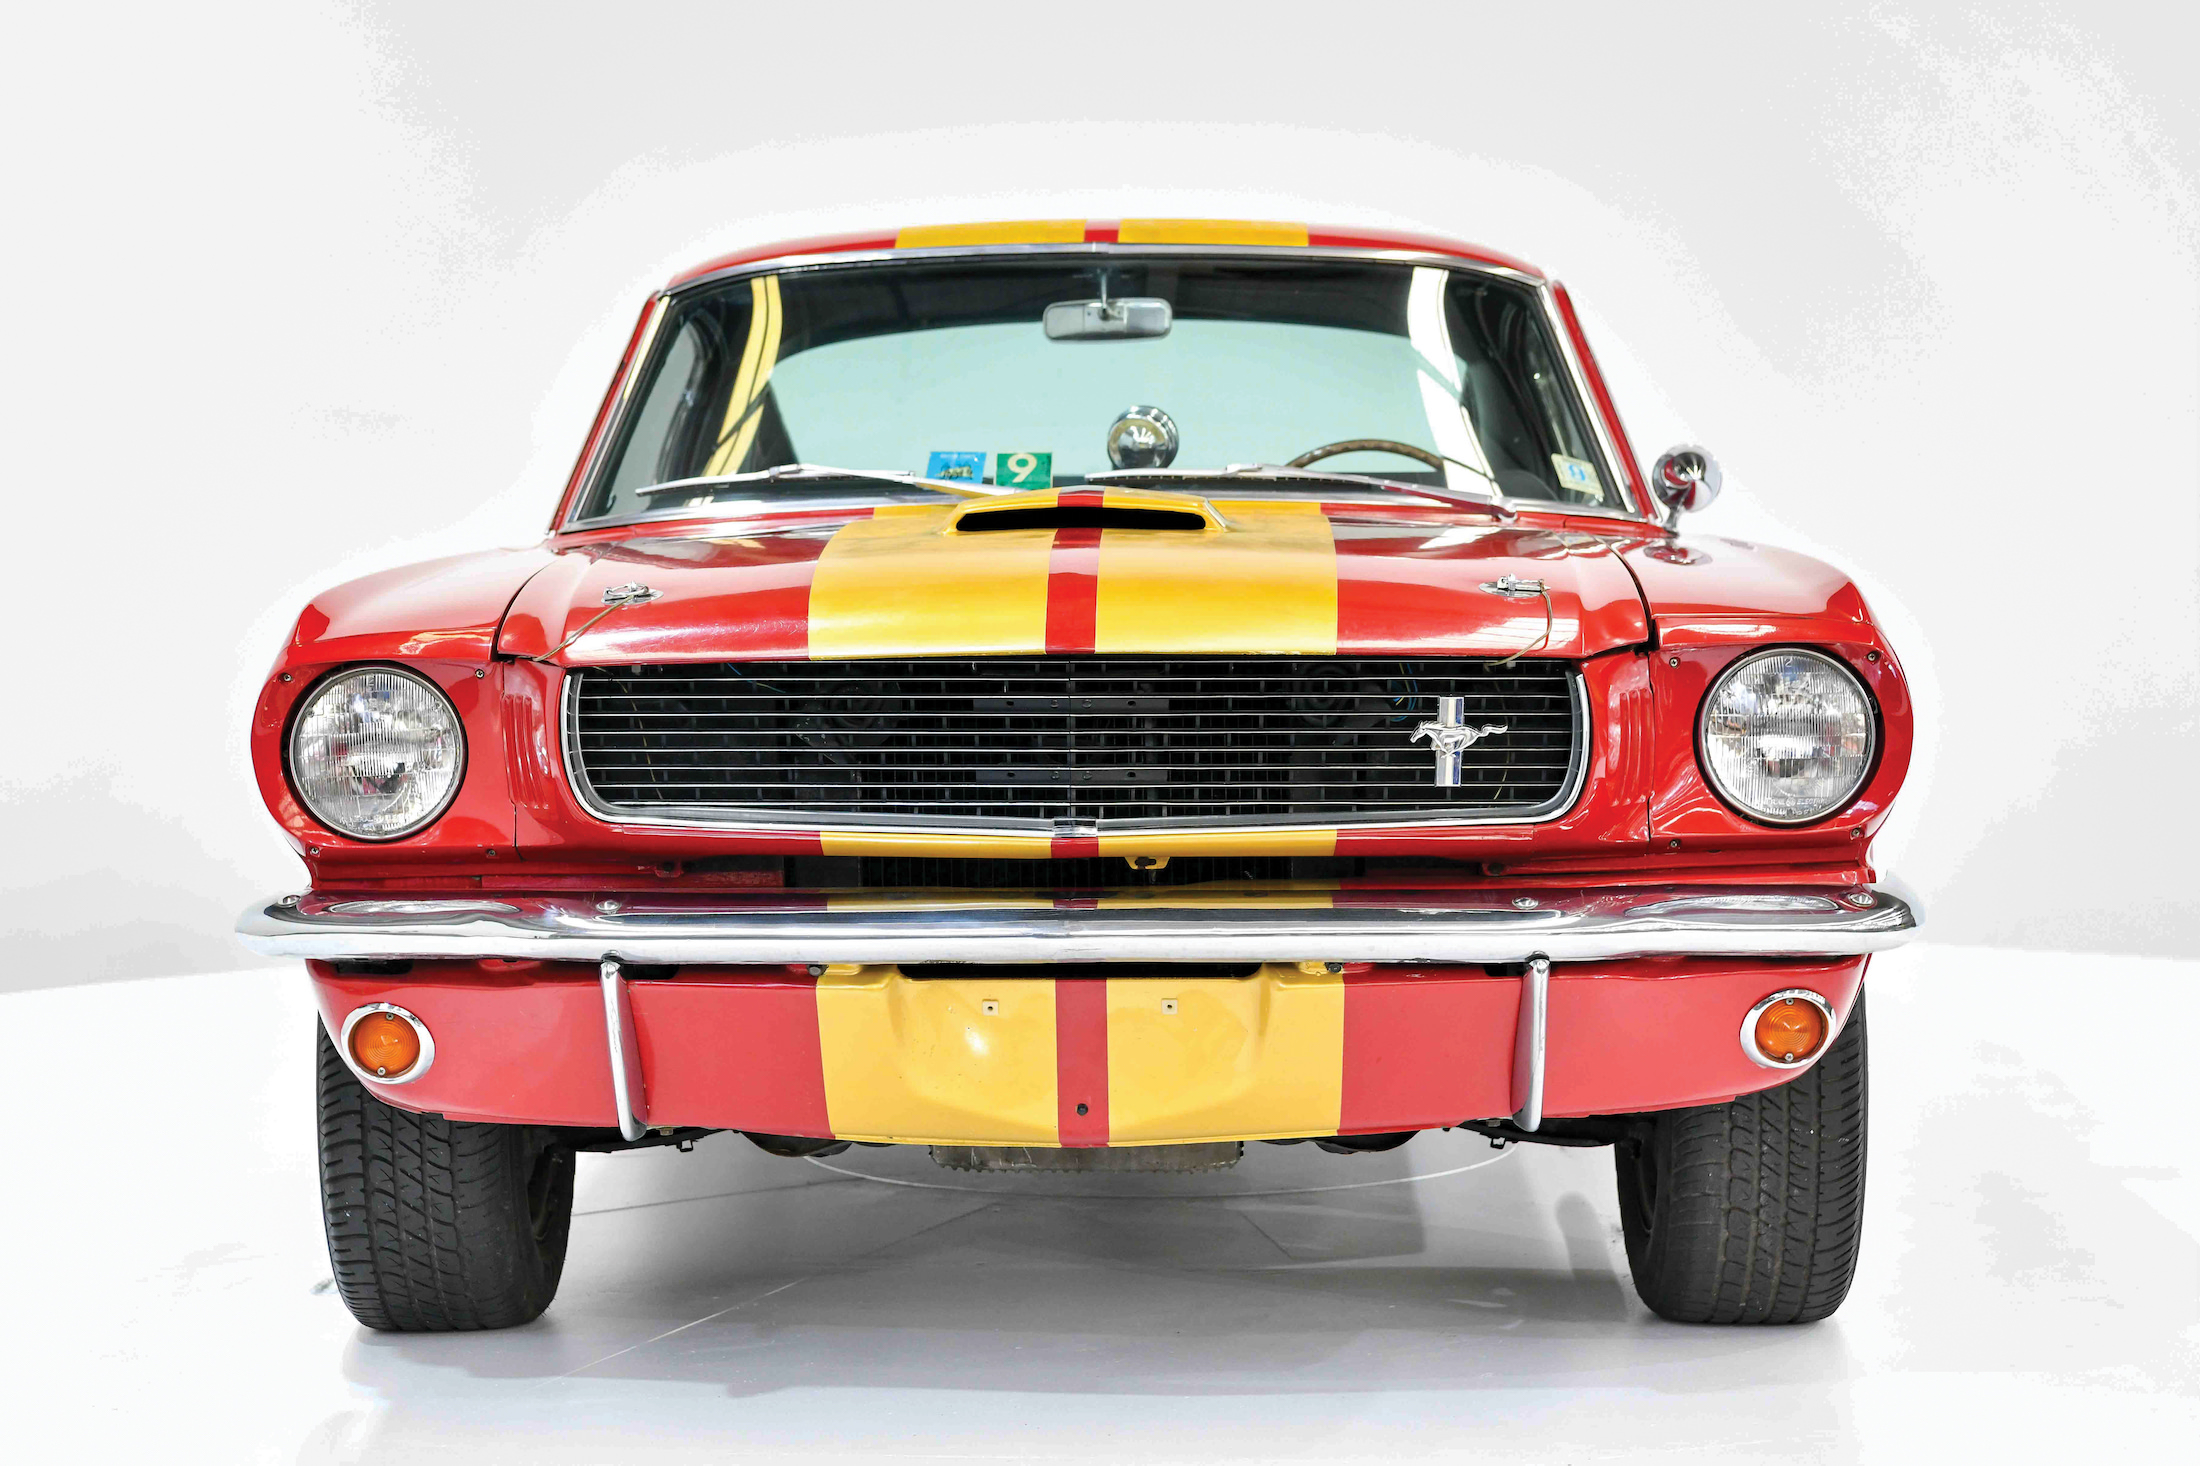 1966 Shelby Gt350 H The Most Valuable Ex Rental Car In The World